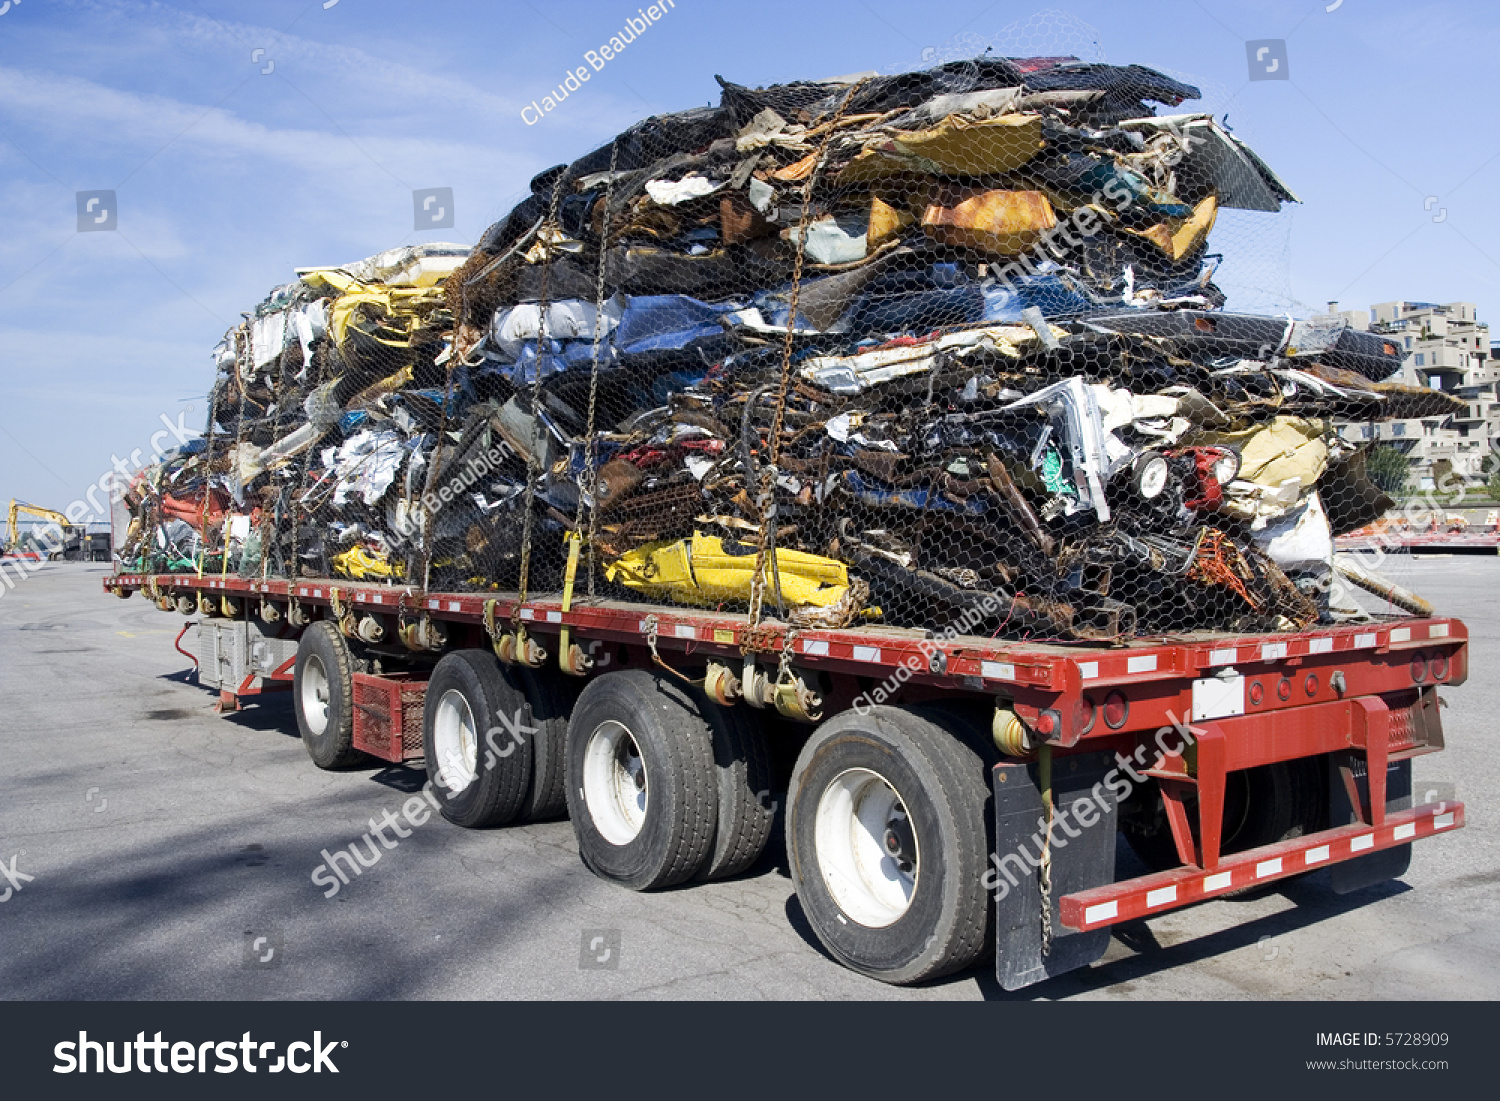 Truck Full Wrecked Cars Scrap Stock Photo (Royalty Free) 5728909 ...